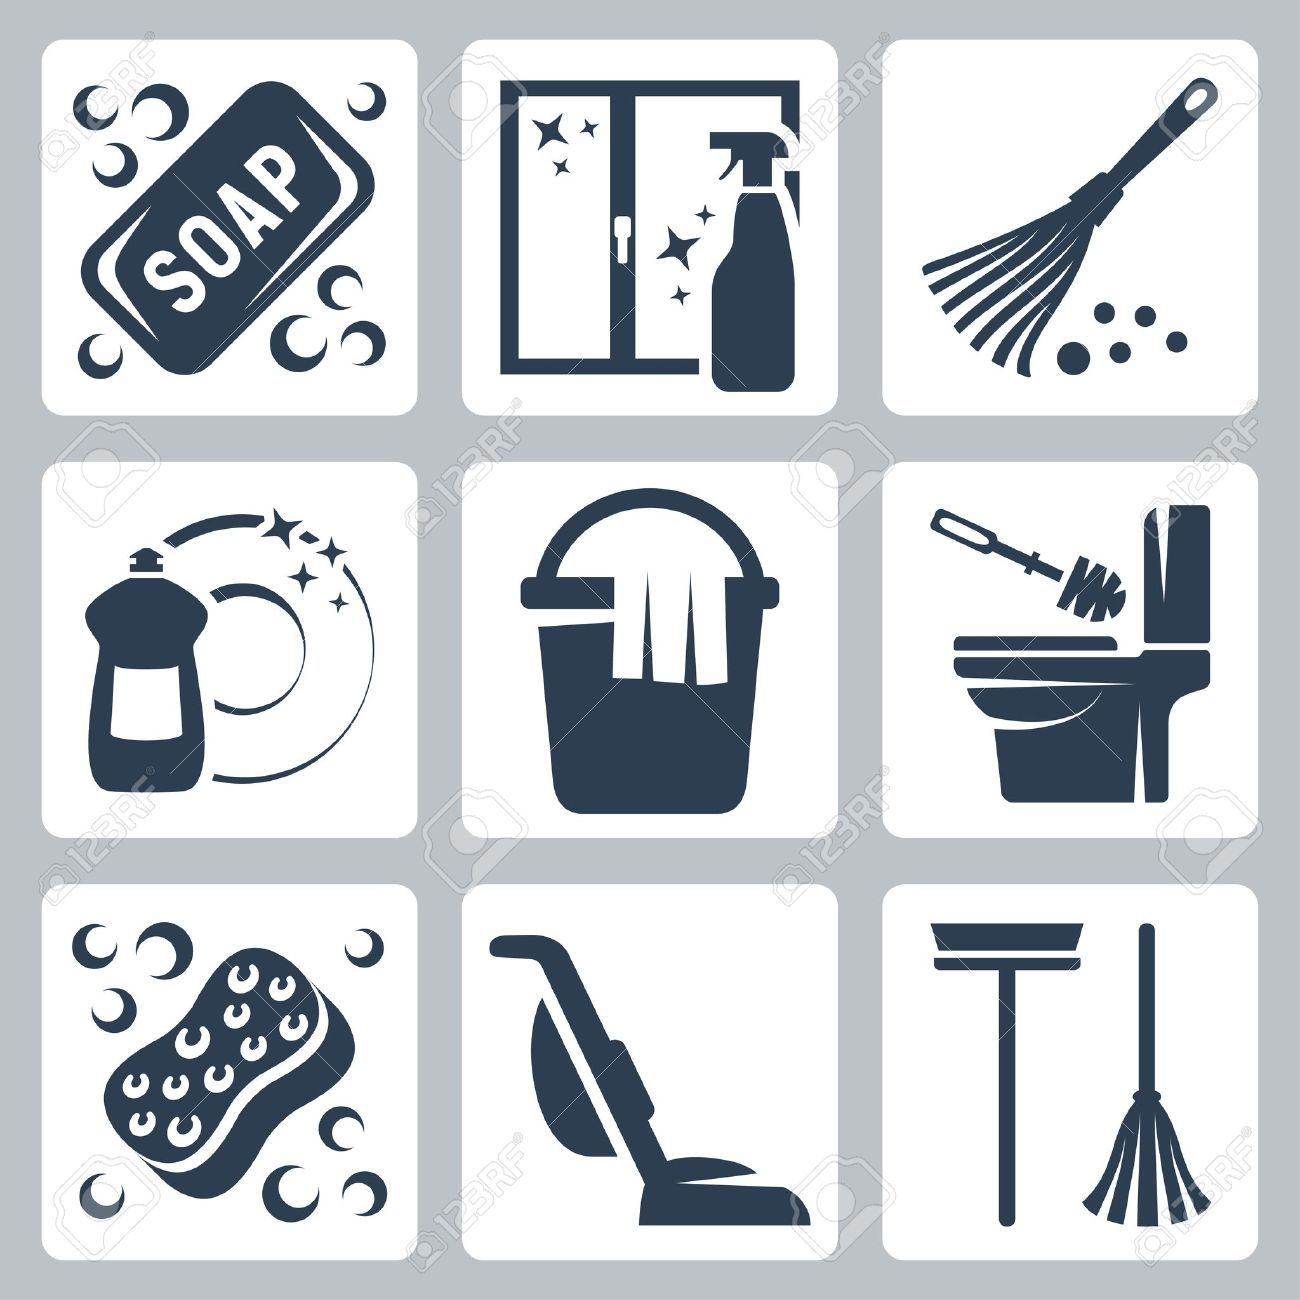 cleaning bucket icon Google Search Cleaning icons